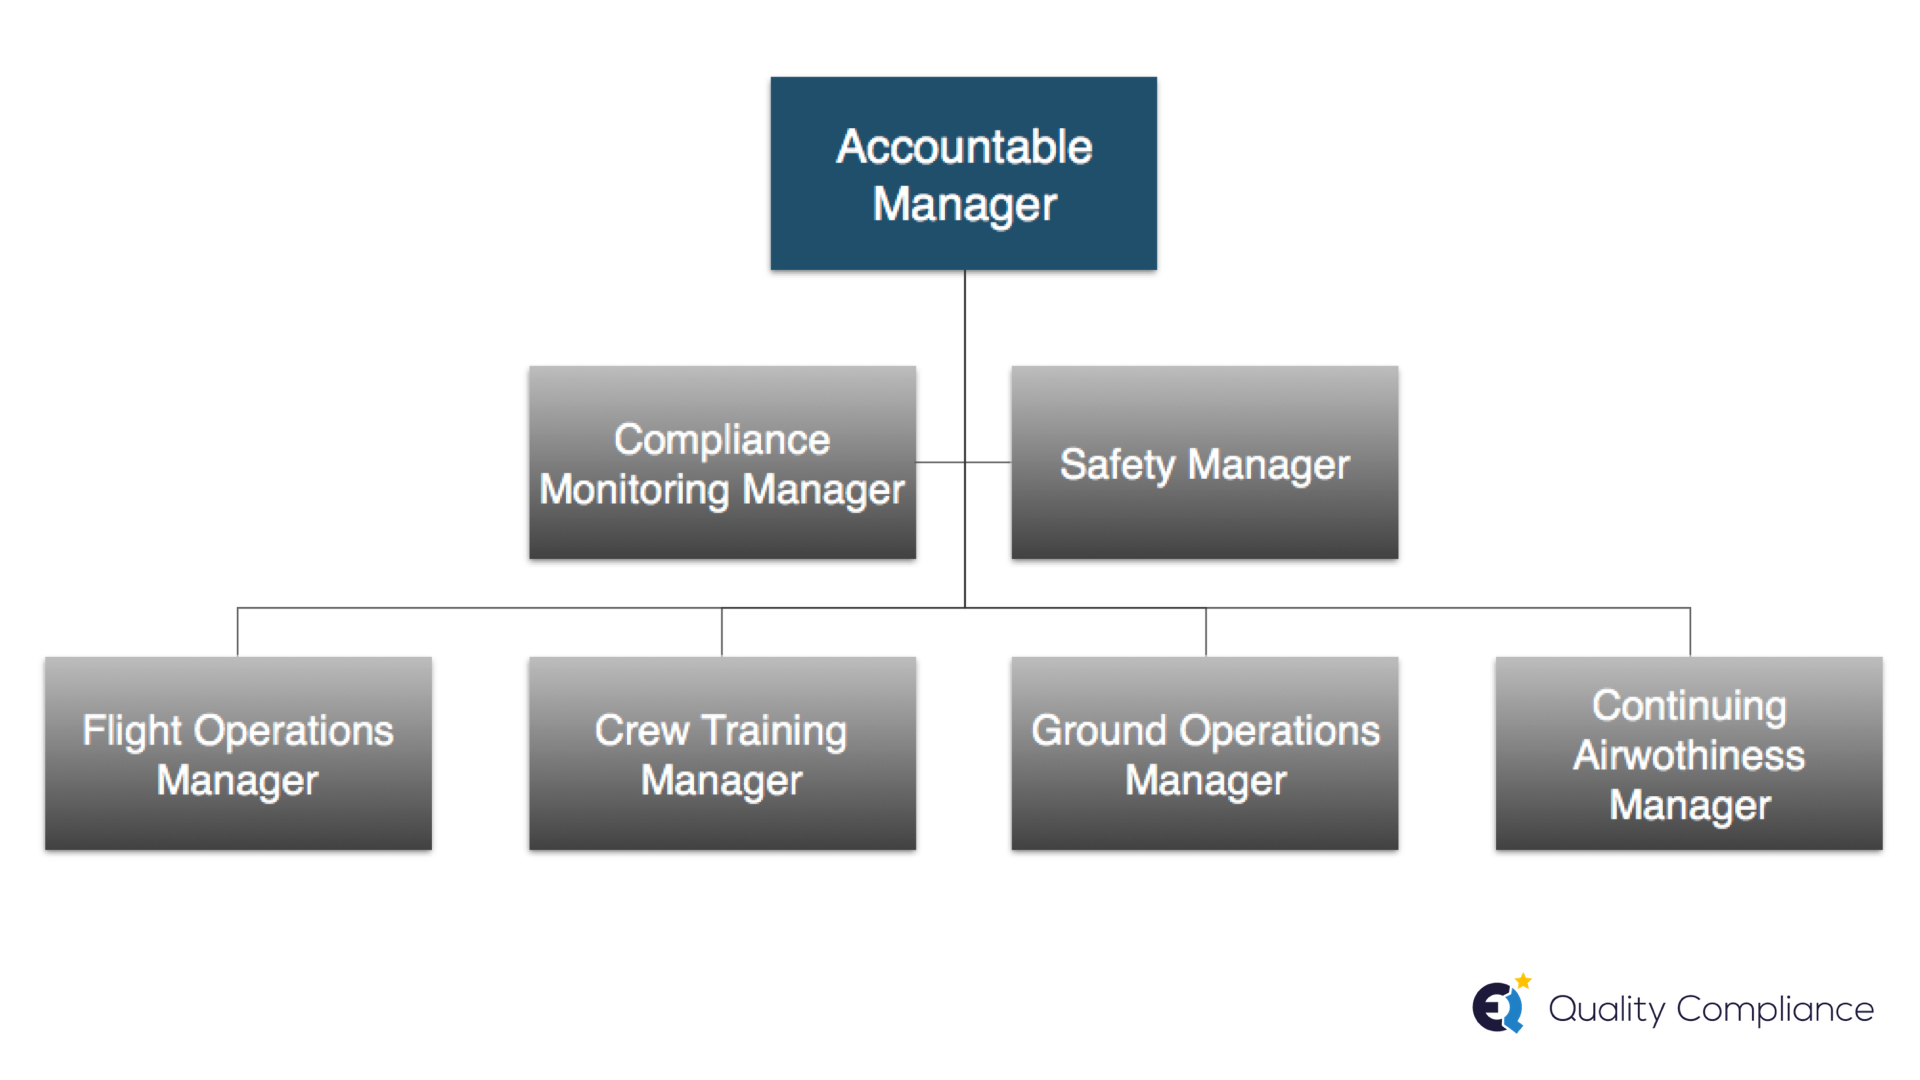 How to certify an Air Operator Certificate (AOC) in EASA